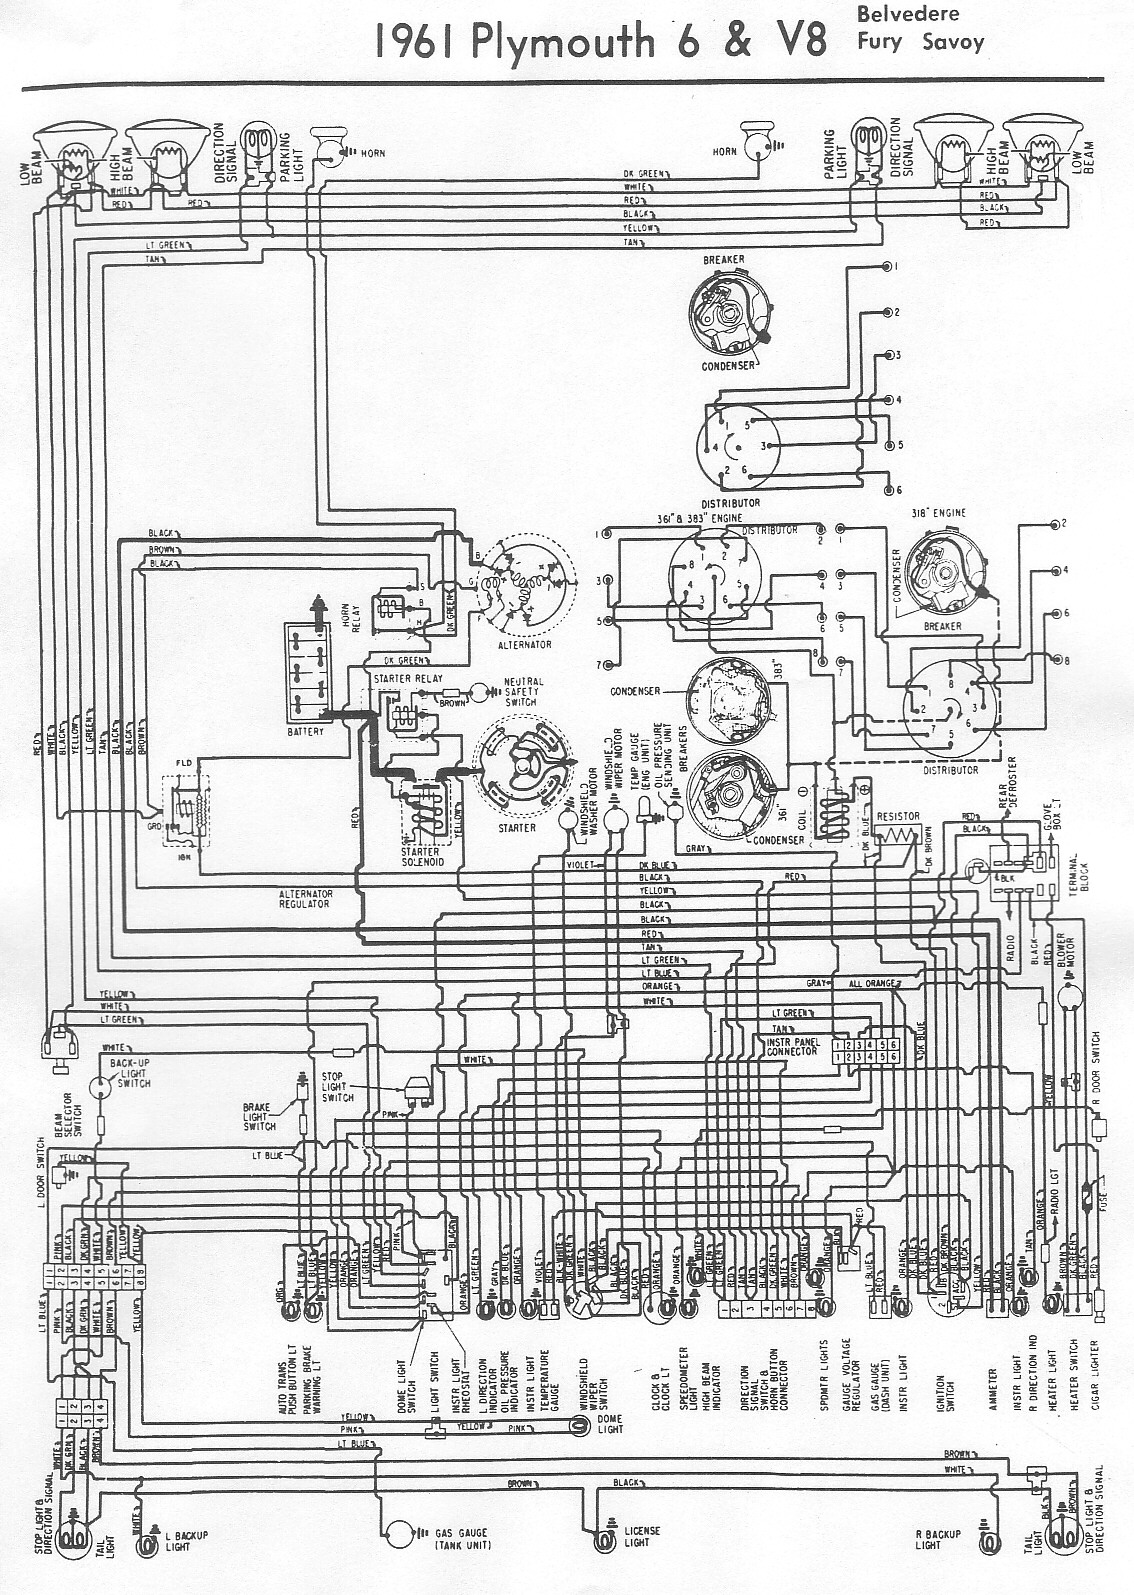 Free Auto Wiring Diagram: 1961 Plymouth Belvedere, Fury or